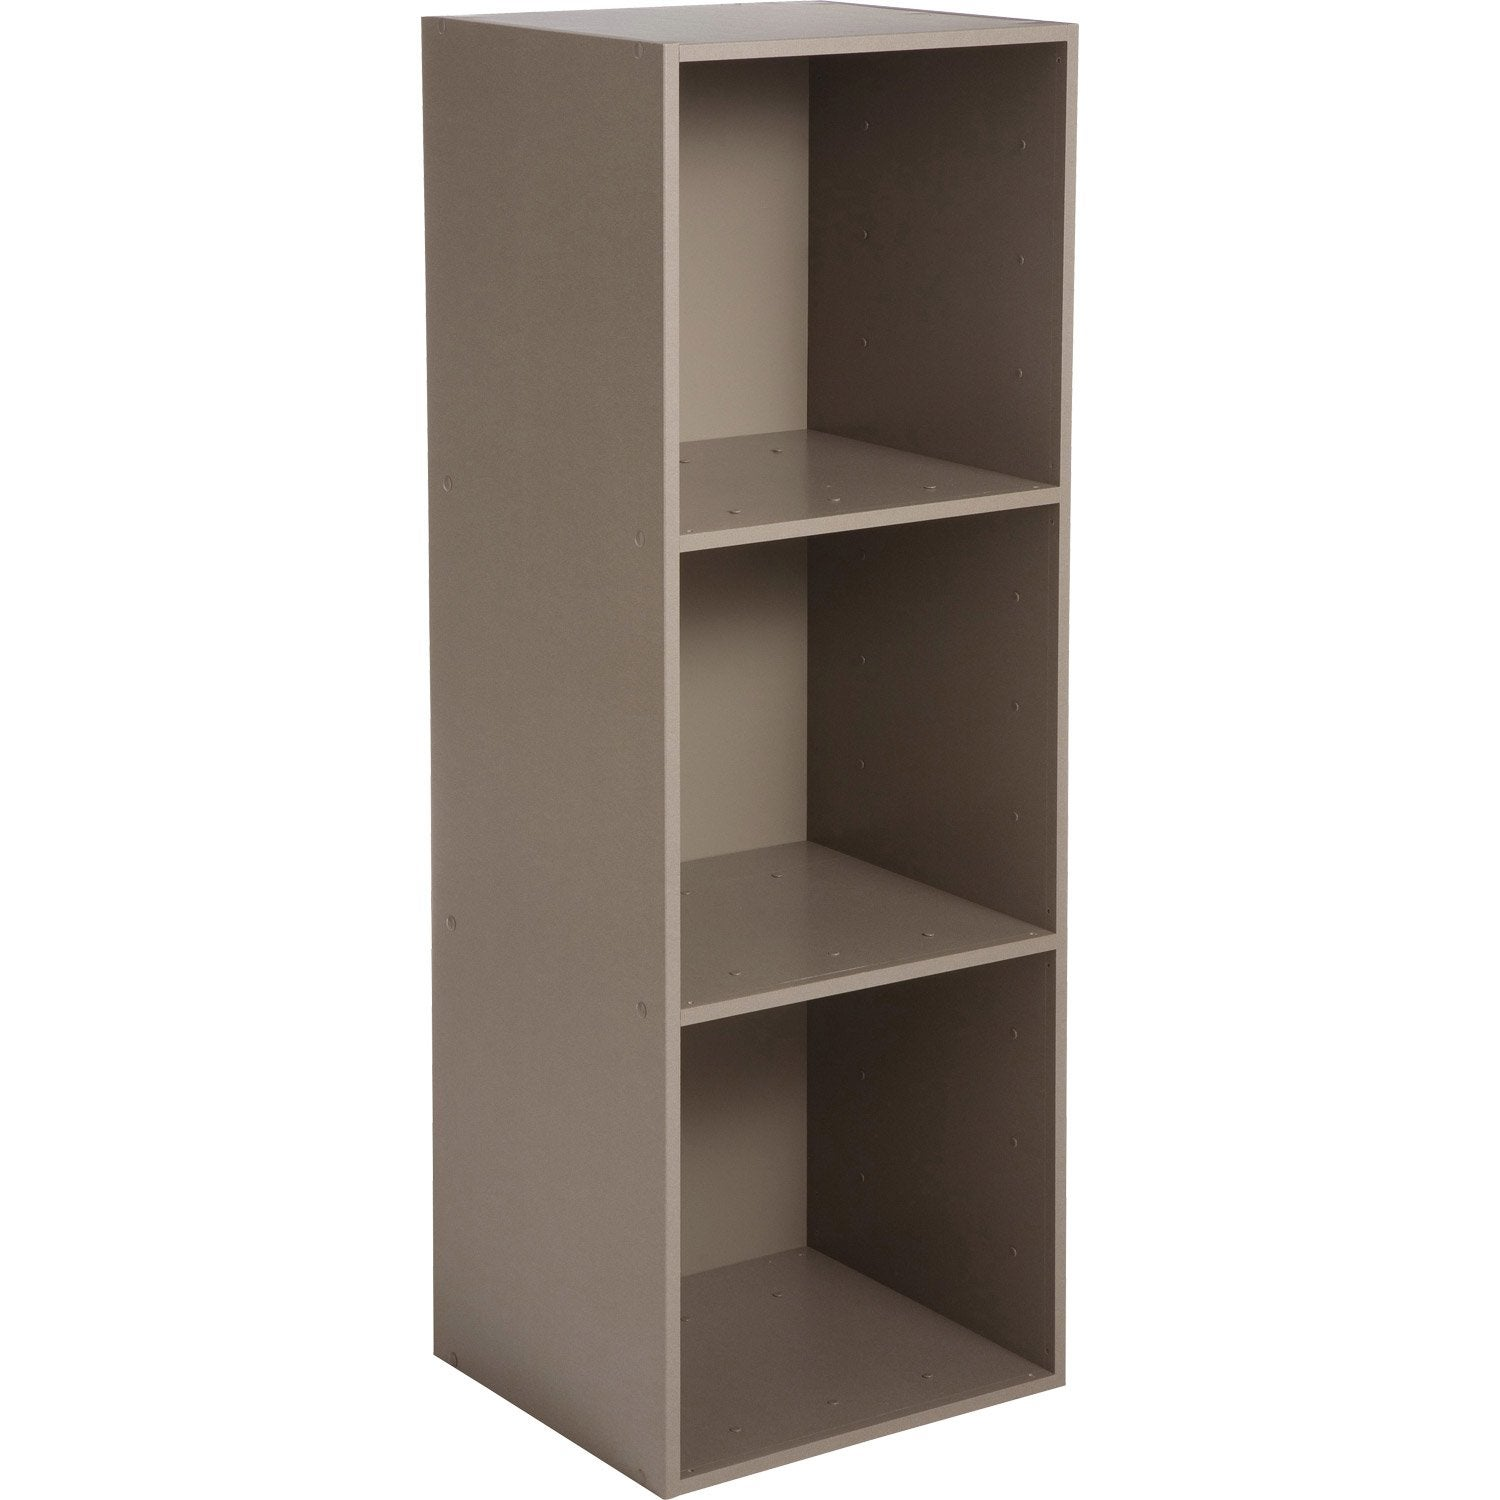 Etag re 3 cases multikaz taupe x x - Etagere a chaussure leroy merlin ...